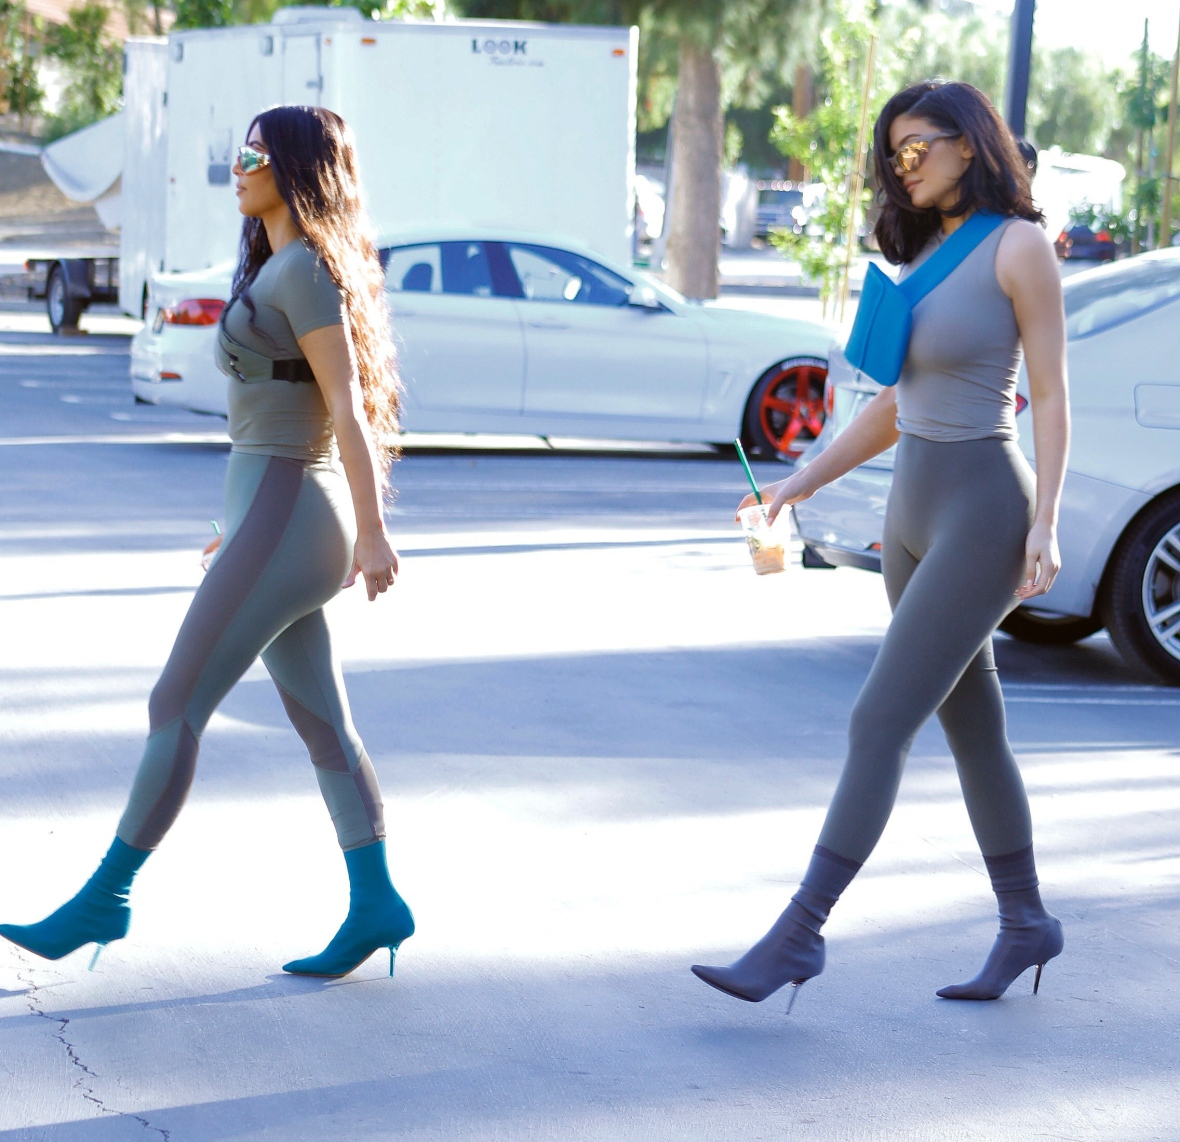 https://www.lifeandstylemag.com/wp-content/uploads/2018/07/kim-kardashian-kylie-jenner-matching-outfits.jpg?w=1180#038;crop=1